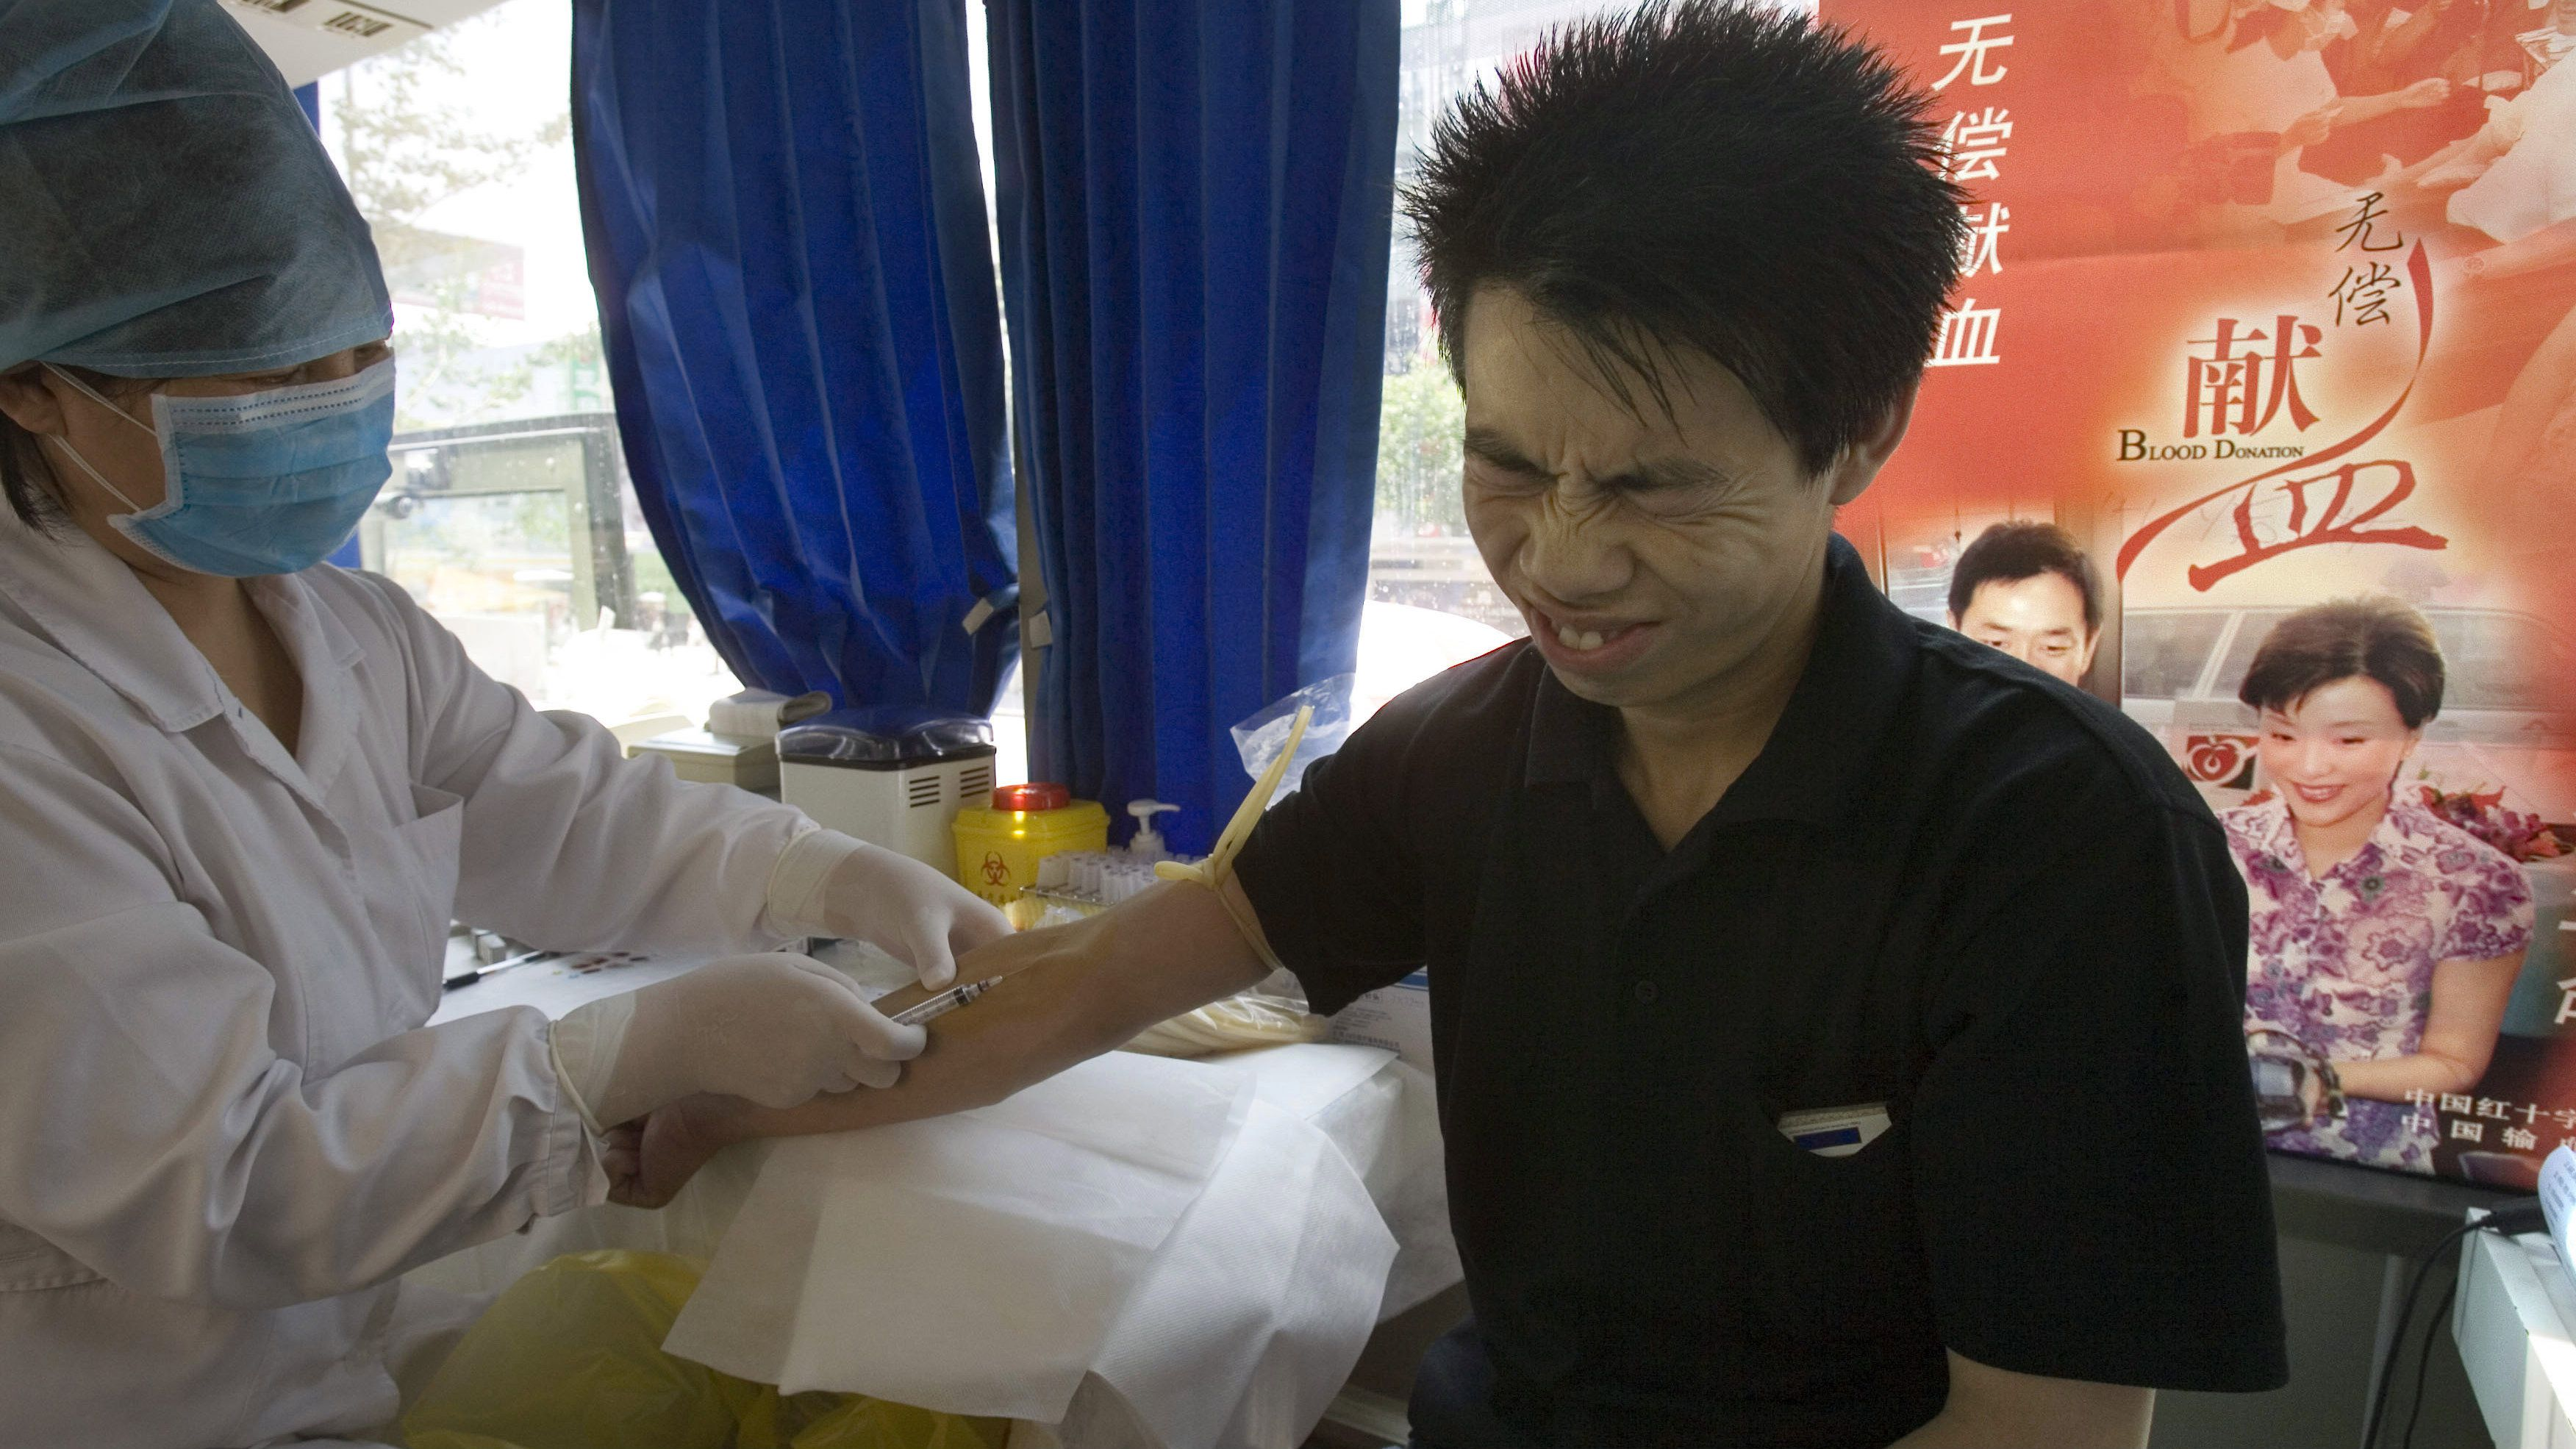 A Chinese man gets his blood tested prior to donating at a mobile blood center in Beijing, China, Wednesday, June 14, 2006. China marks World Blood Donor Day to encourage the habit of voluntary blood donations. China has launched repeated campaigns to clean up its blood-supply industry since unsanitary blood selling practices infected thousands of people in the central province of Henan with AIDS in the 1990s. (AP Photo/Ng Han Guan)